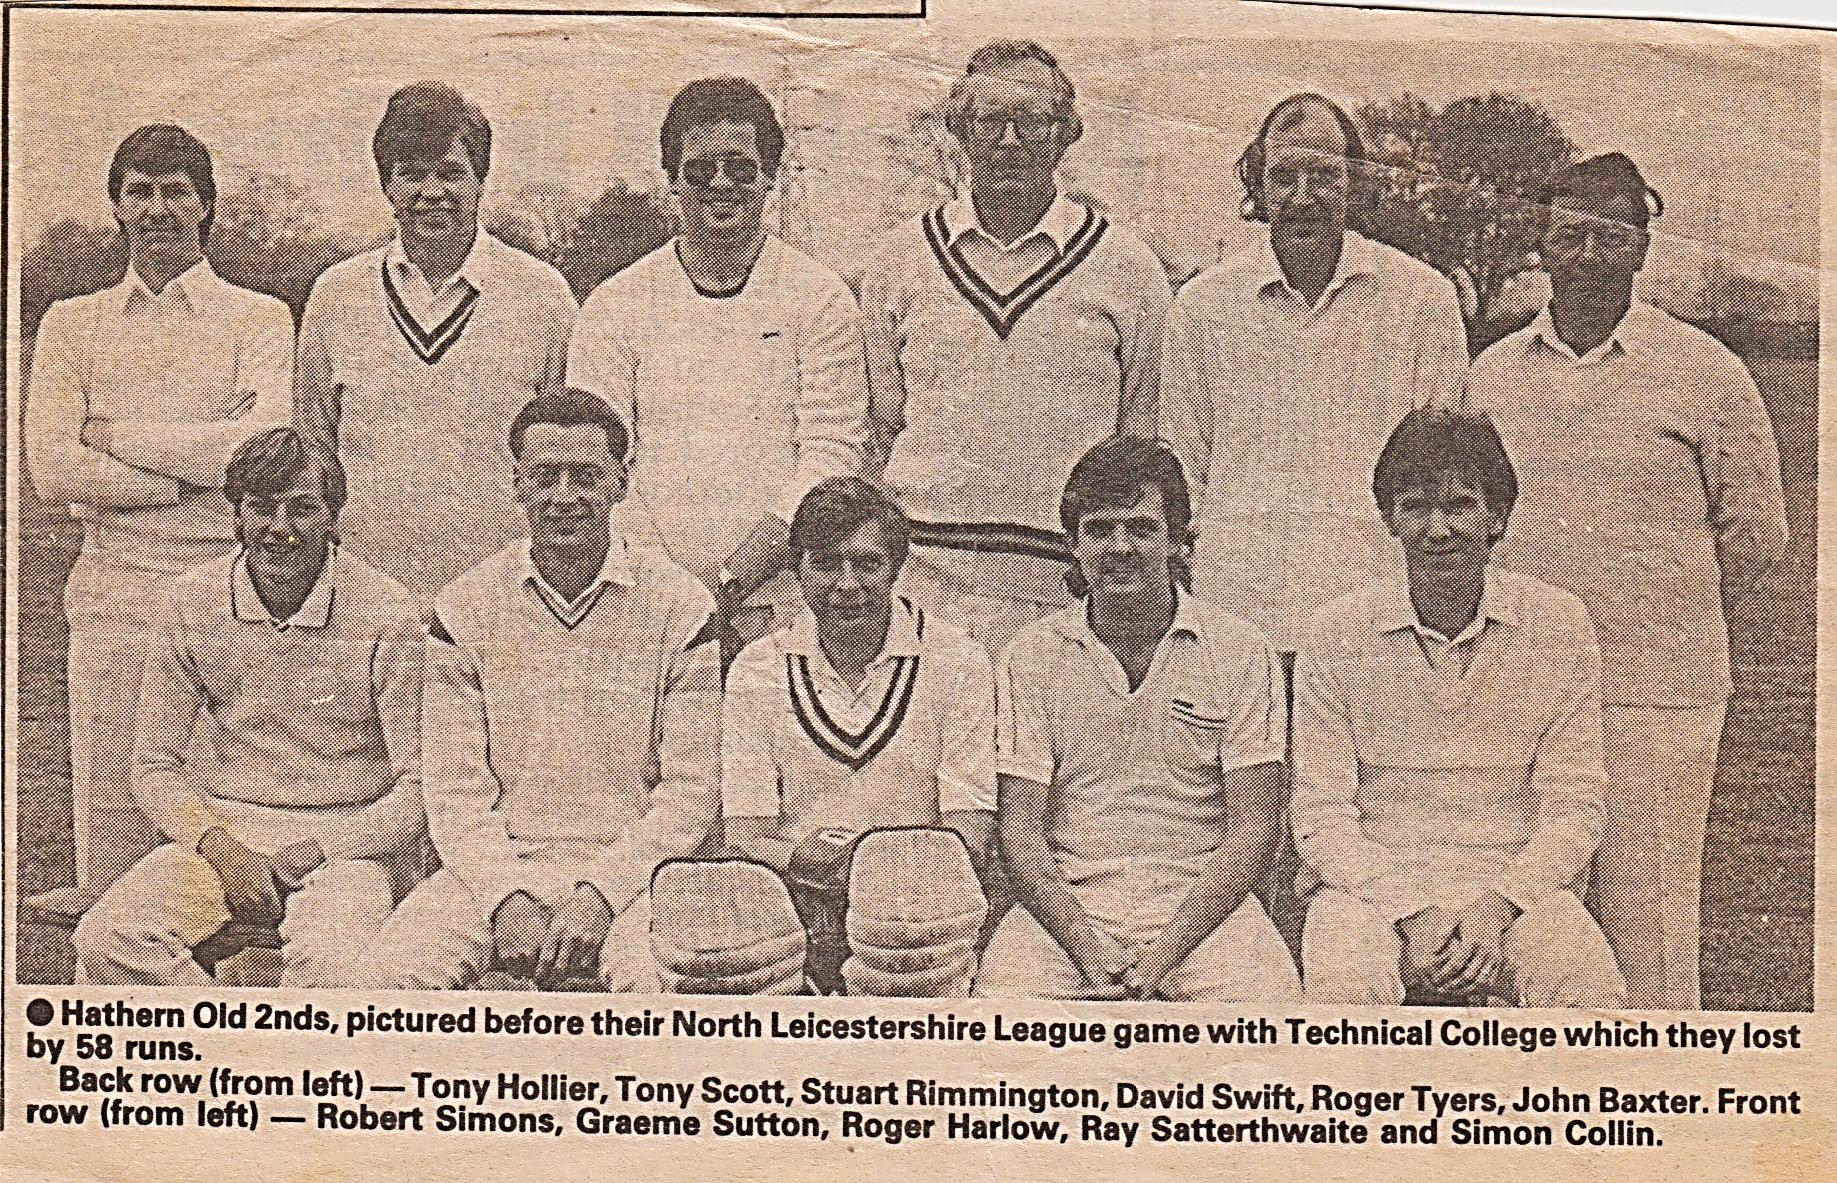 cricket_second_team_around_1980_001.jpg